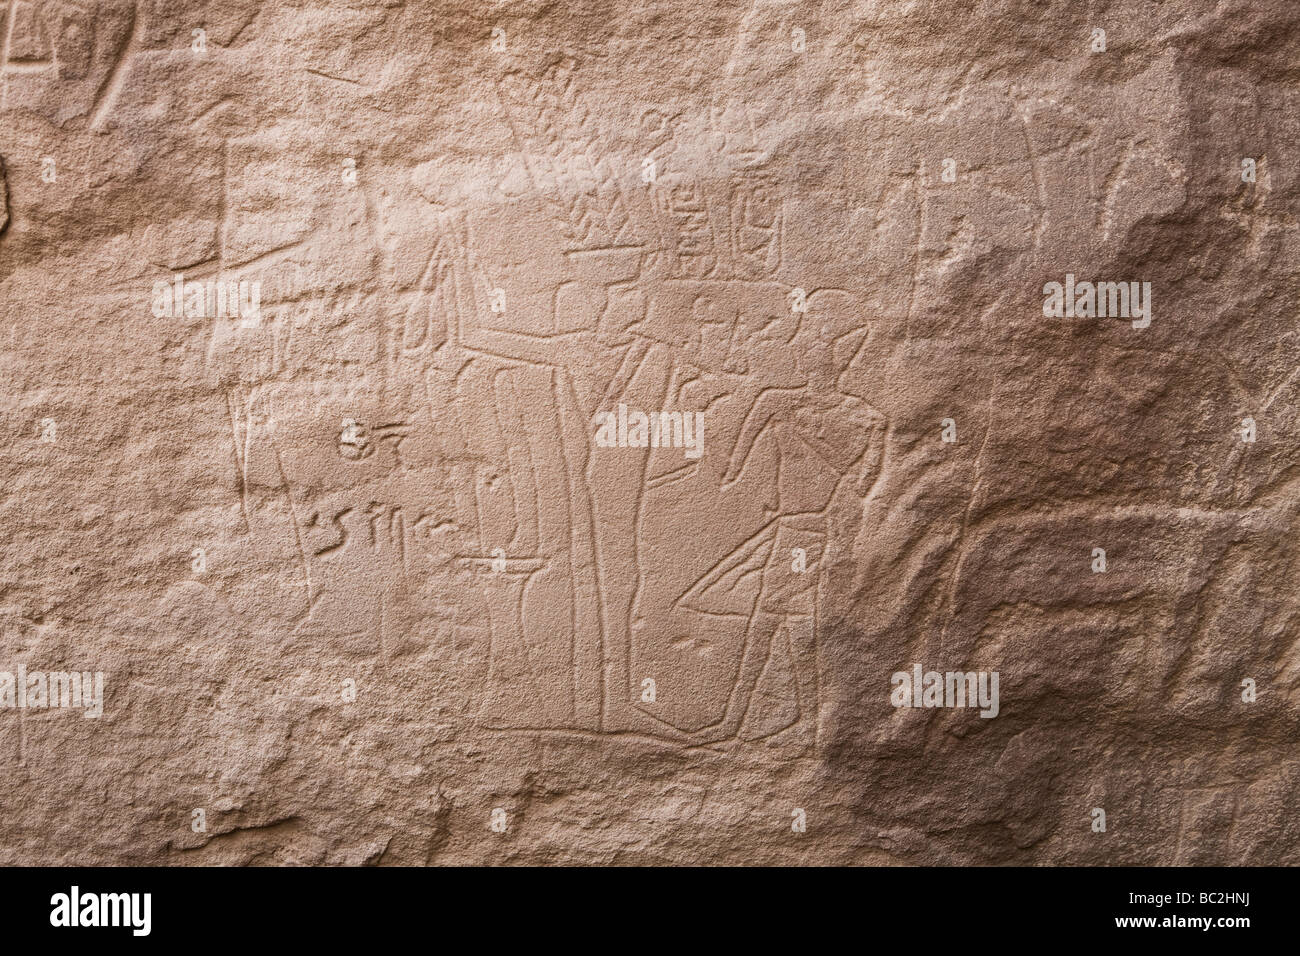 Rock-art in Wadi Mineh  showing Amenhotep1 before the God Min in the Eastern Desert of Egypt, North Africa - Stock Image